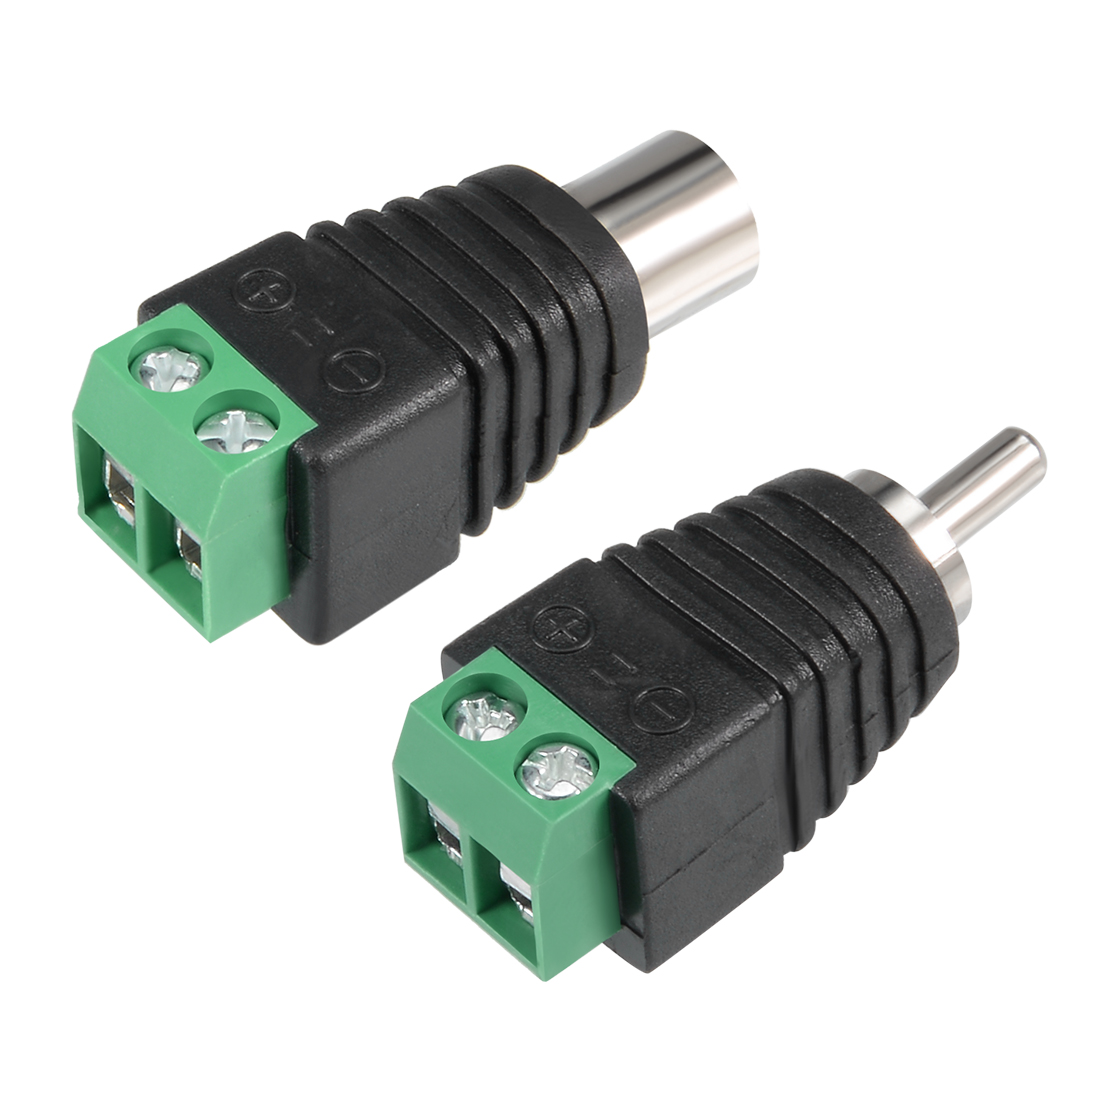 2Pcs RCA Male/Female Connector to AV 2-Screw Terminal Audio Video Adapter CCTV